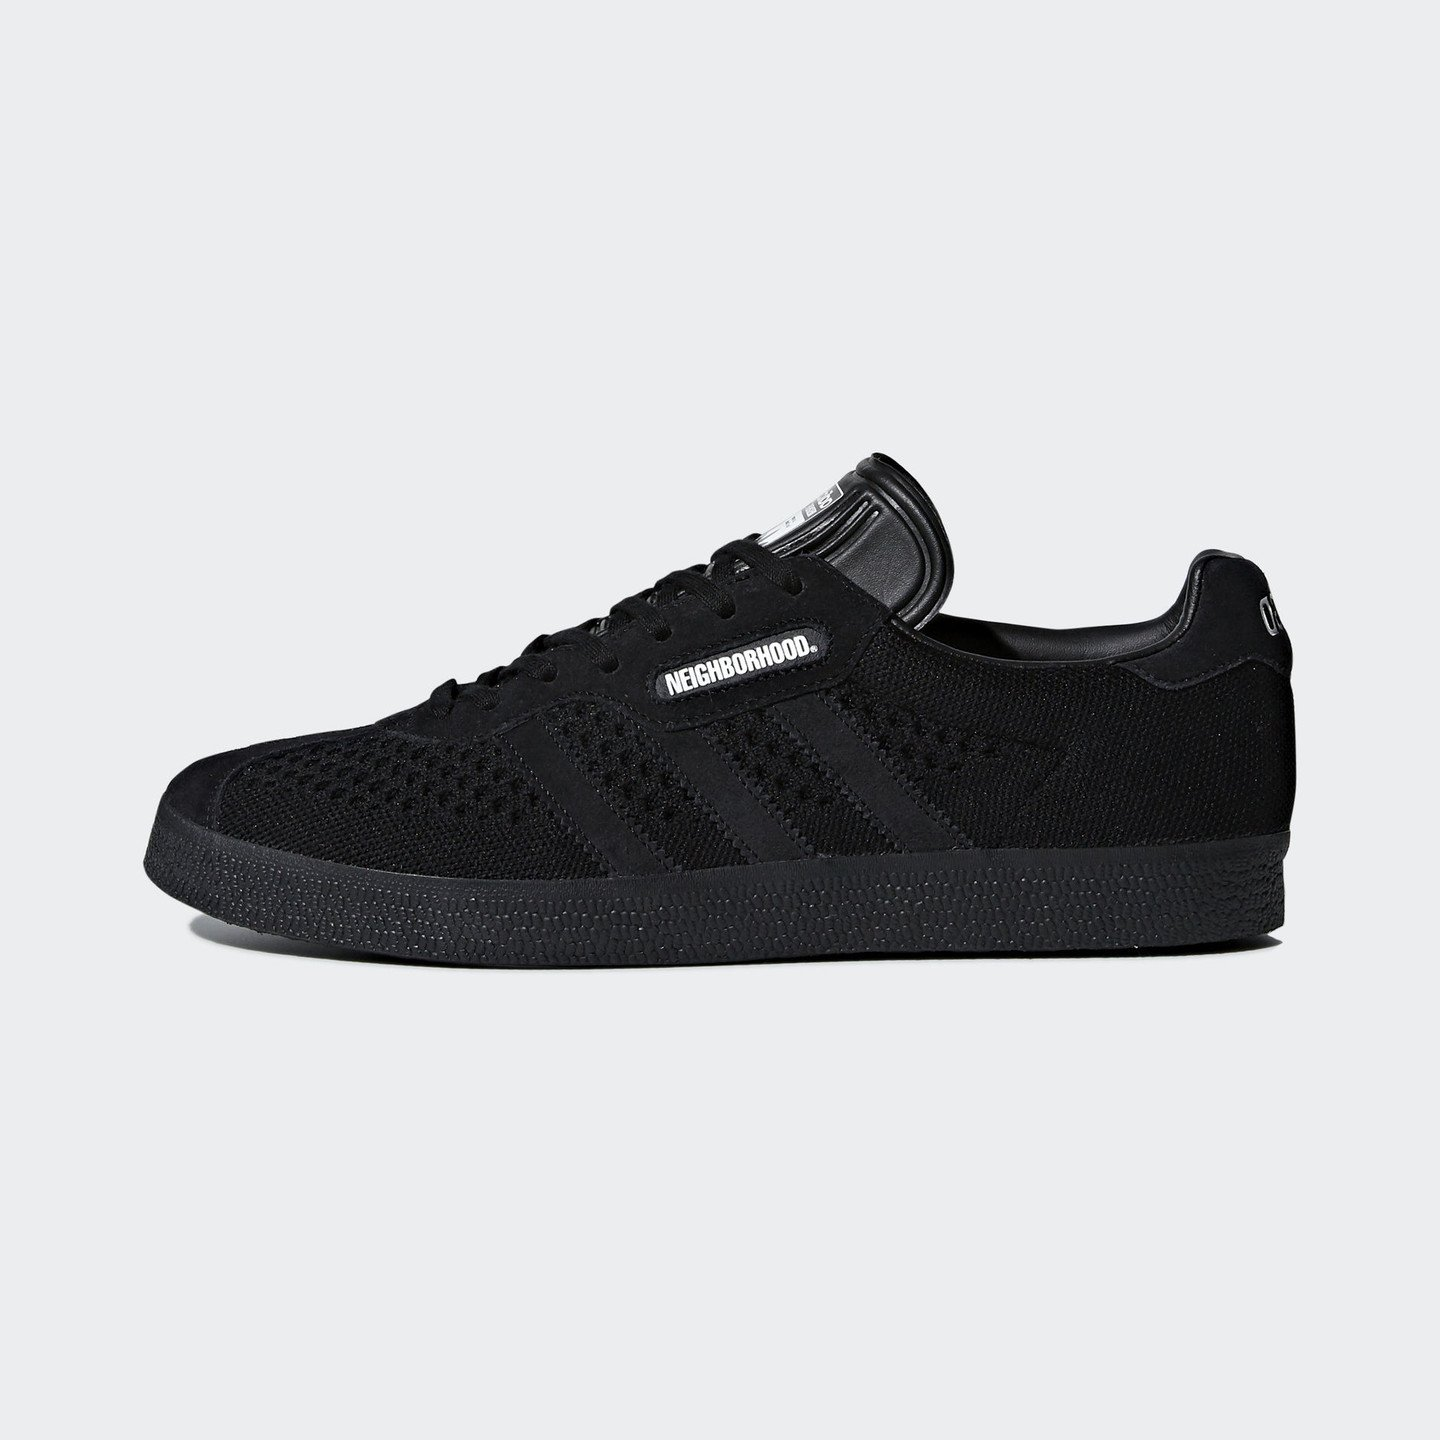 Adidas Neighborhood Gazelle Super Core Black / Ftwr White DA8836